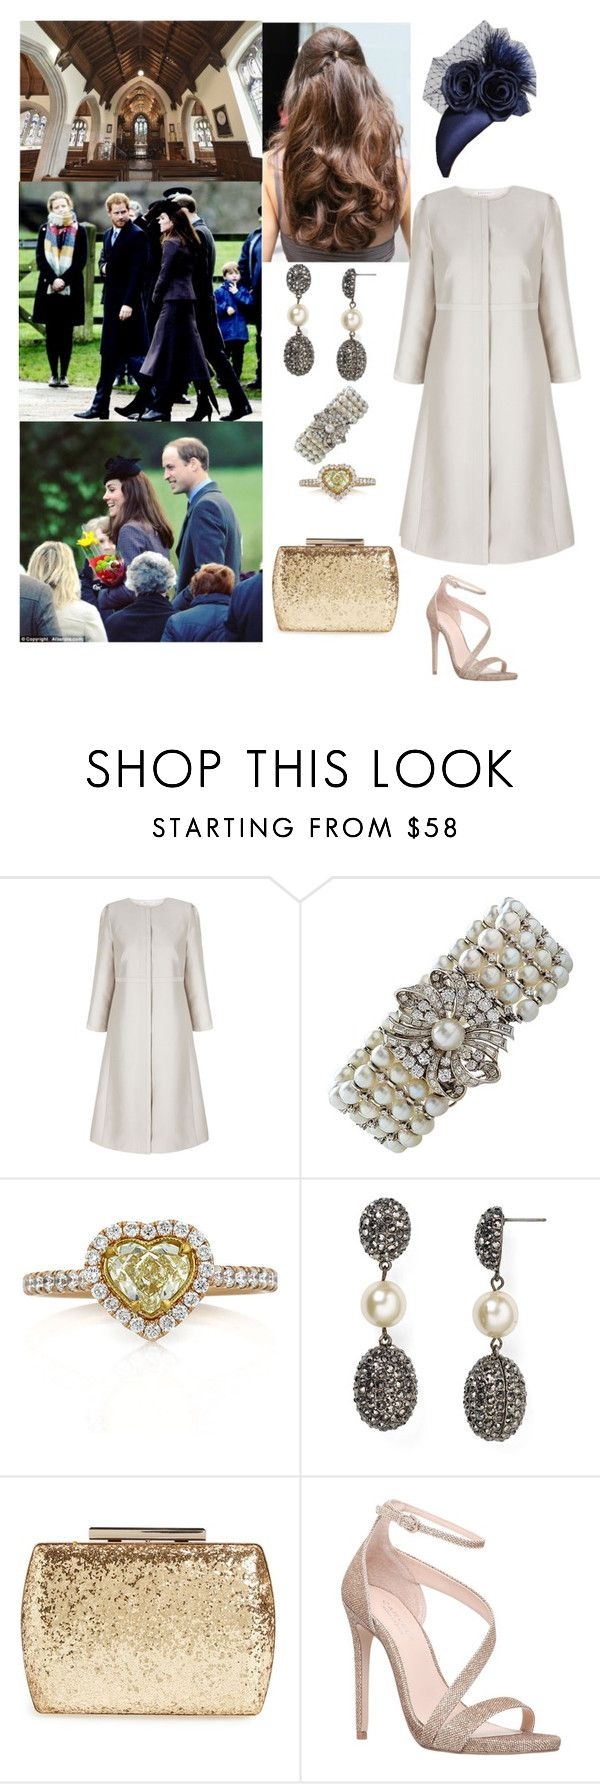 """""""Sunday Service at St Mary Magdalene Church"""" by duchessofoxfordshire ❤ liked on Polyvore featuring Mark Broumand, Kenneth Jay Lane, Glint and Carvela"""